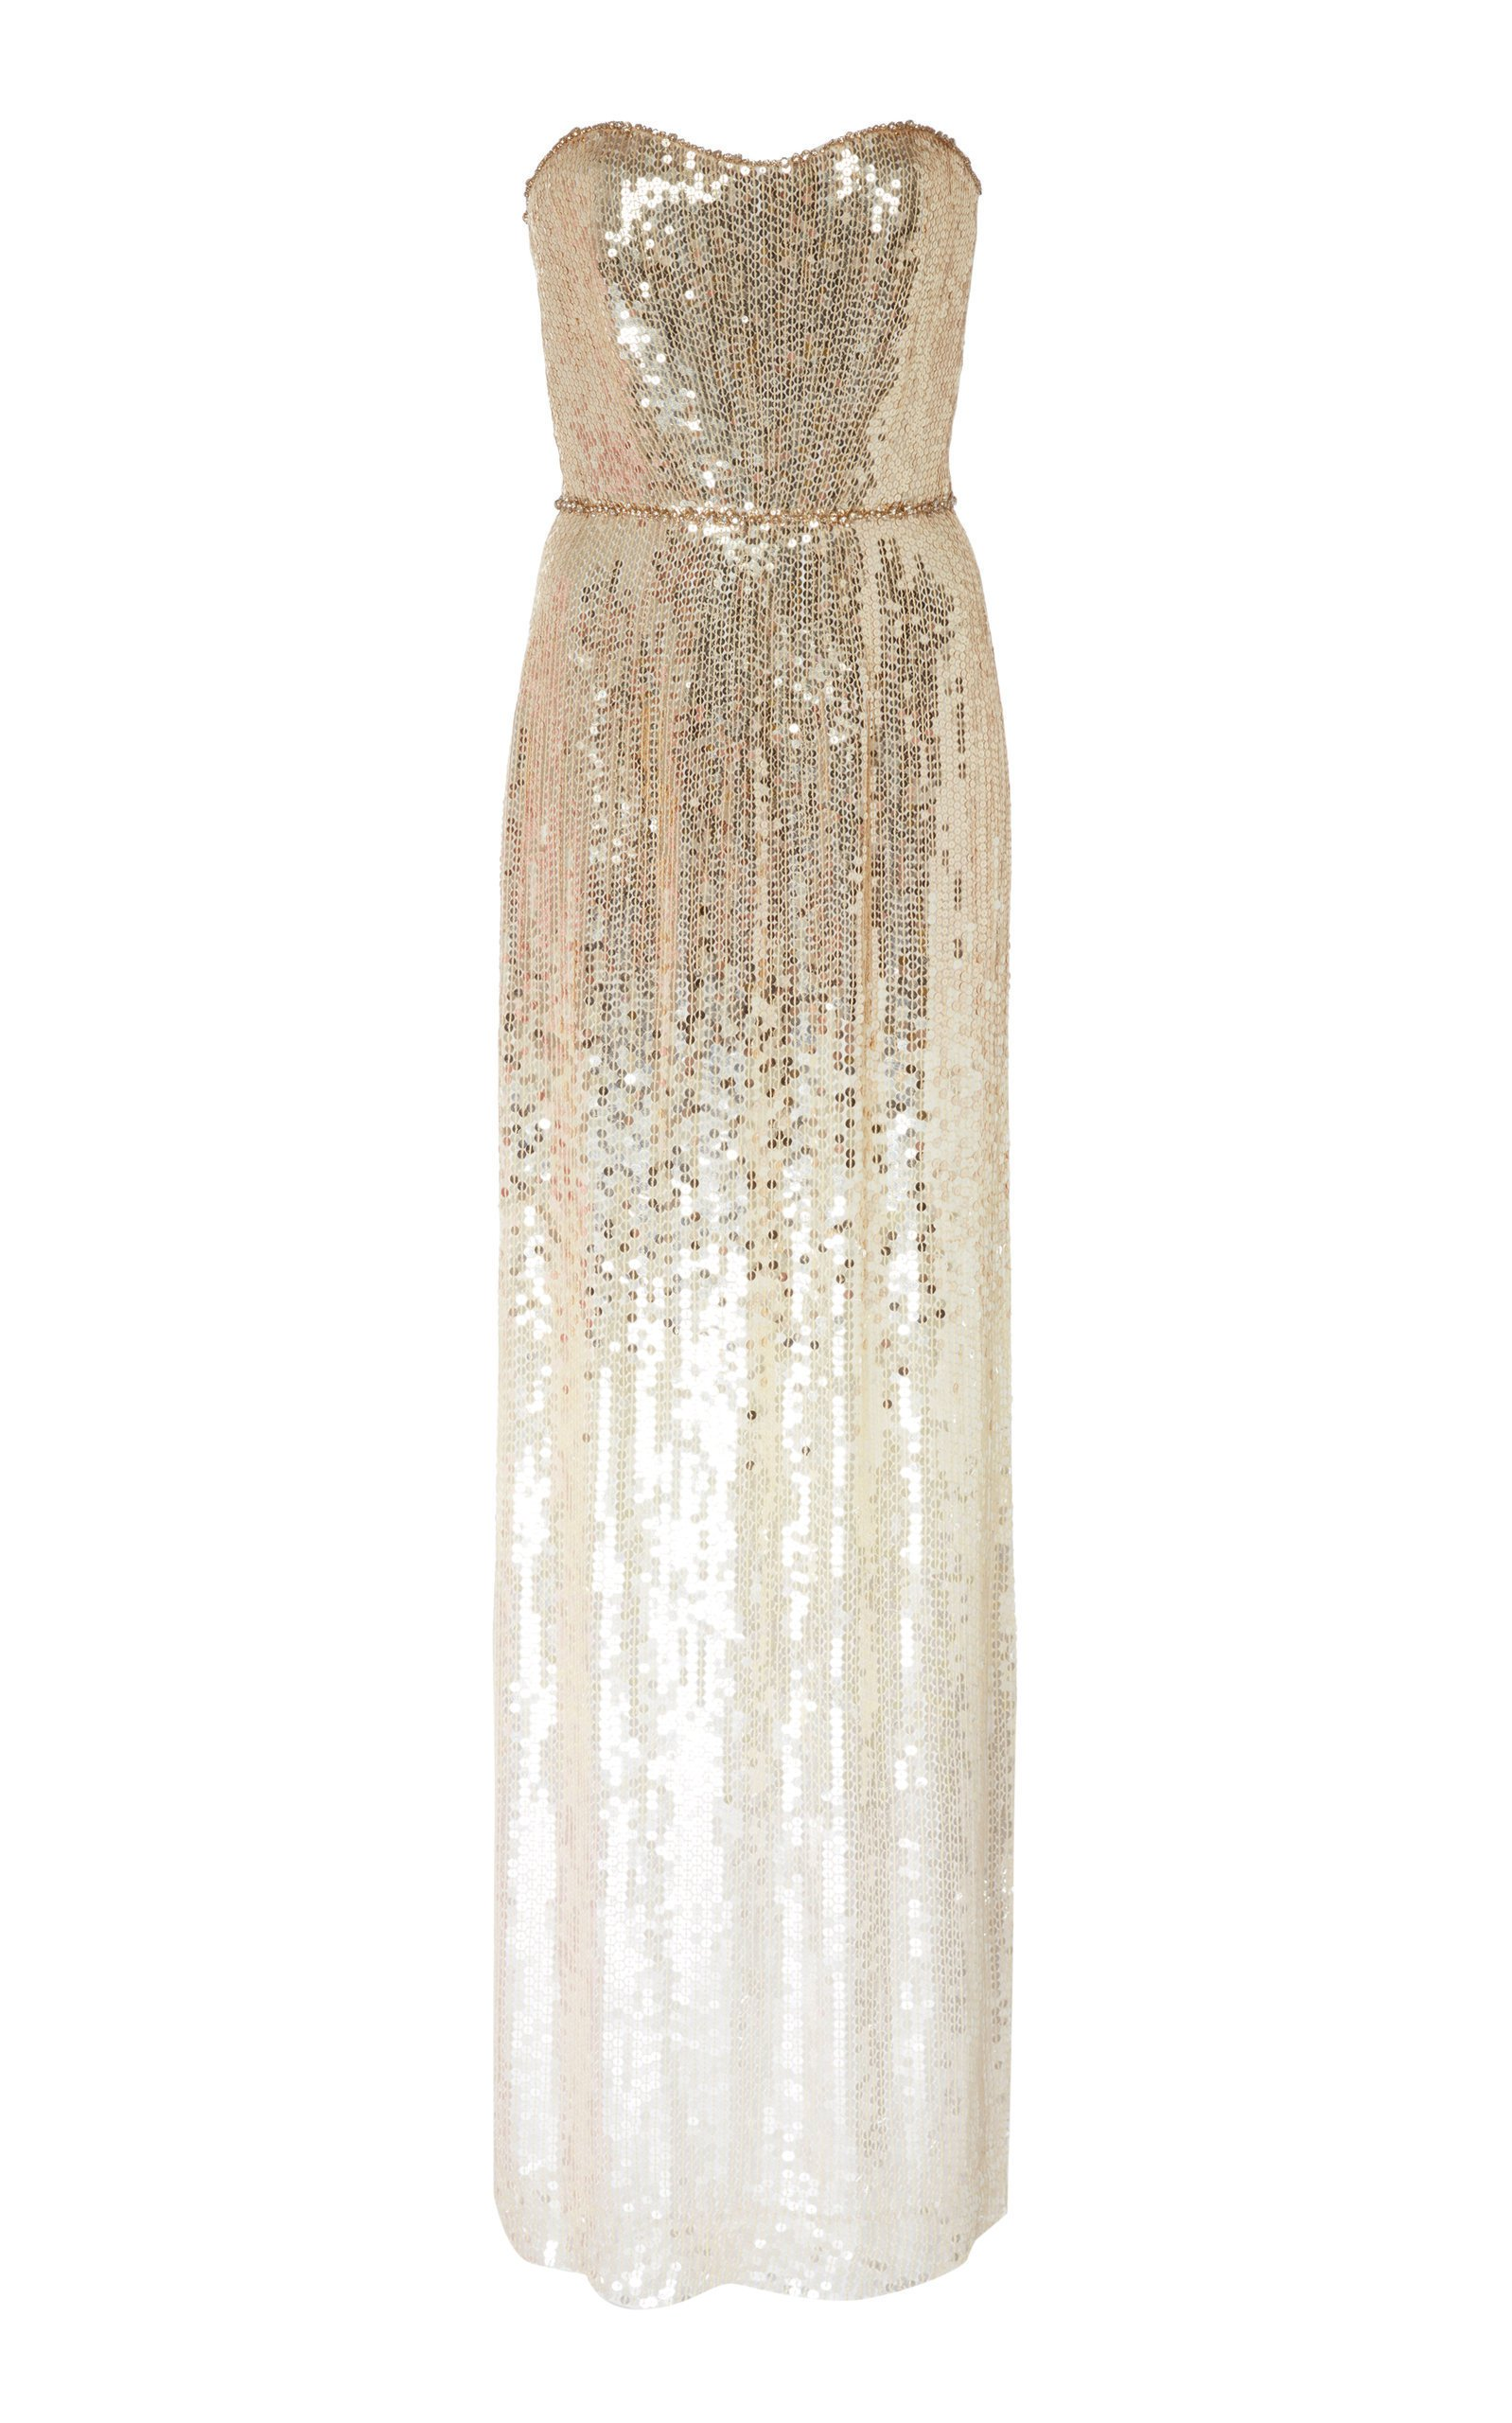 Jenny Packham Rafela Ombre Chiffon Sequined Gown